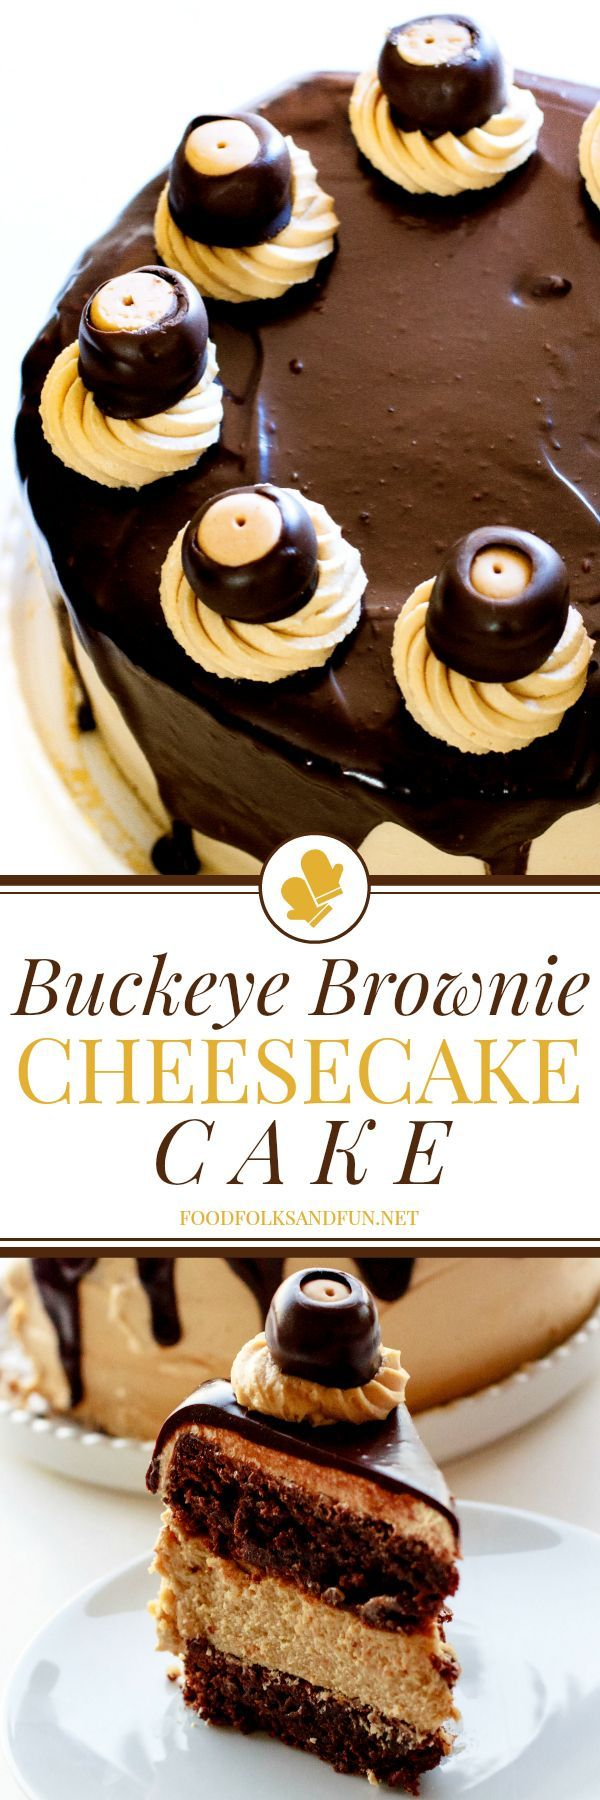 This cheesecake cake has 2 layers of fudgy brownies, 1 layer of luscious peanut butter cheesecake, fluffy peanut butter frosting, silky-smooth chocolate ganache, and luscious buckeye confections. All of these elements make this Buckeye Brownie Cheesecake Cake simply irresistible!